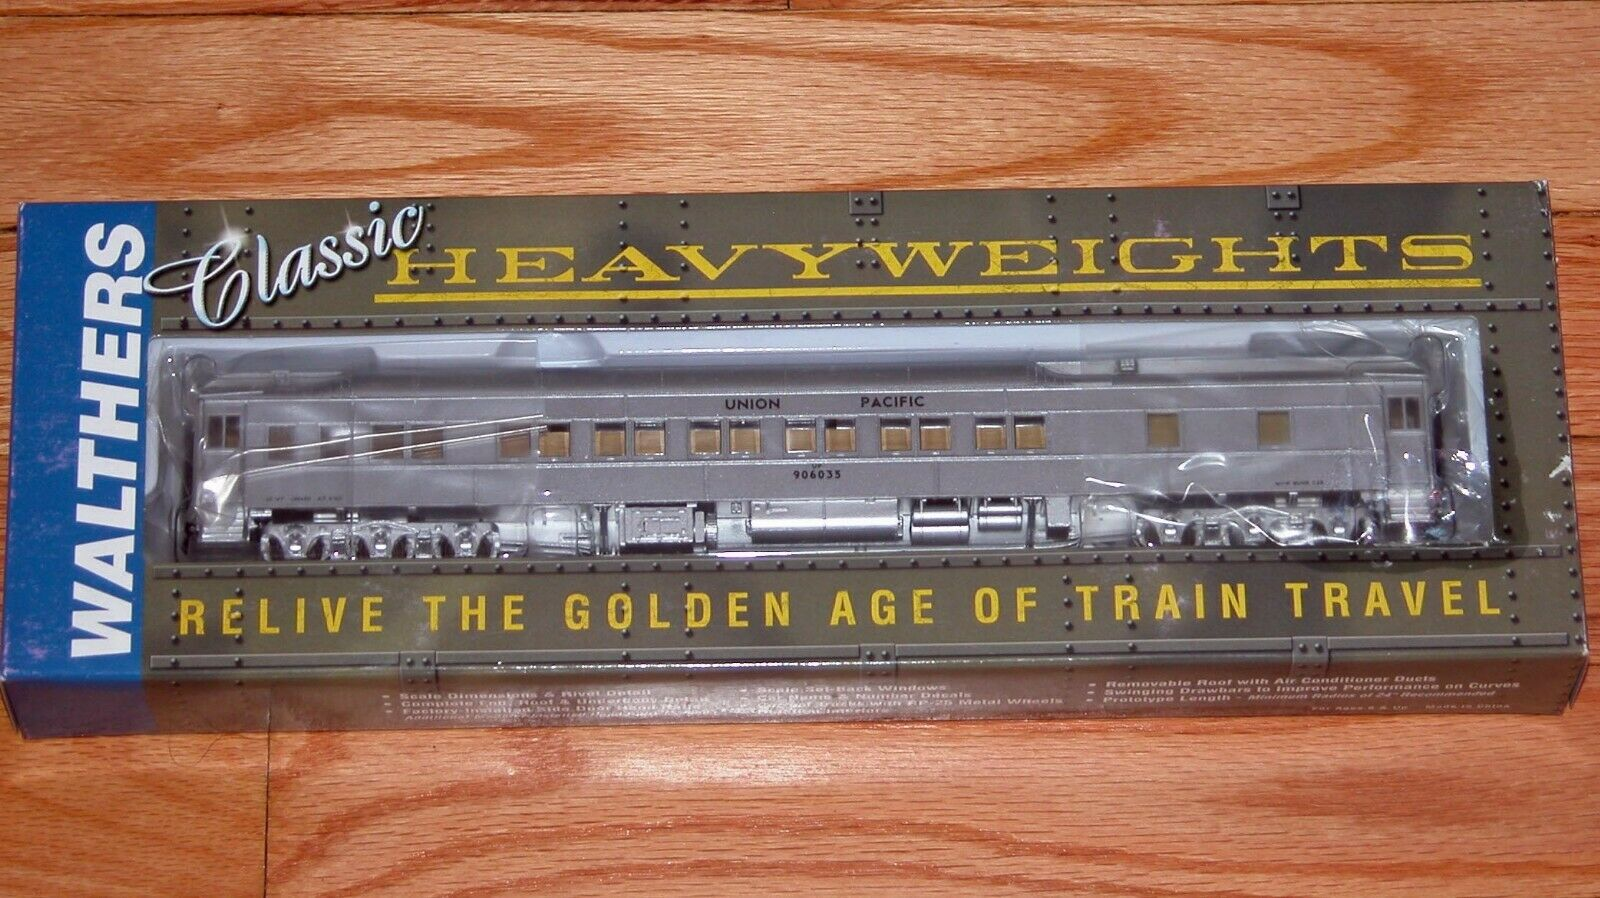 WALTHERS 932-10025 PULLMAN HEAVYWEIGHT 12-1 MAINTENANCE OF WAY UNION PACIFIC UP